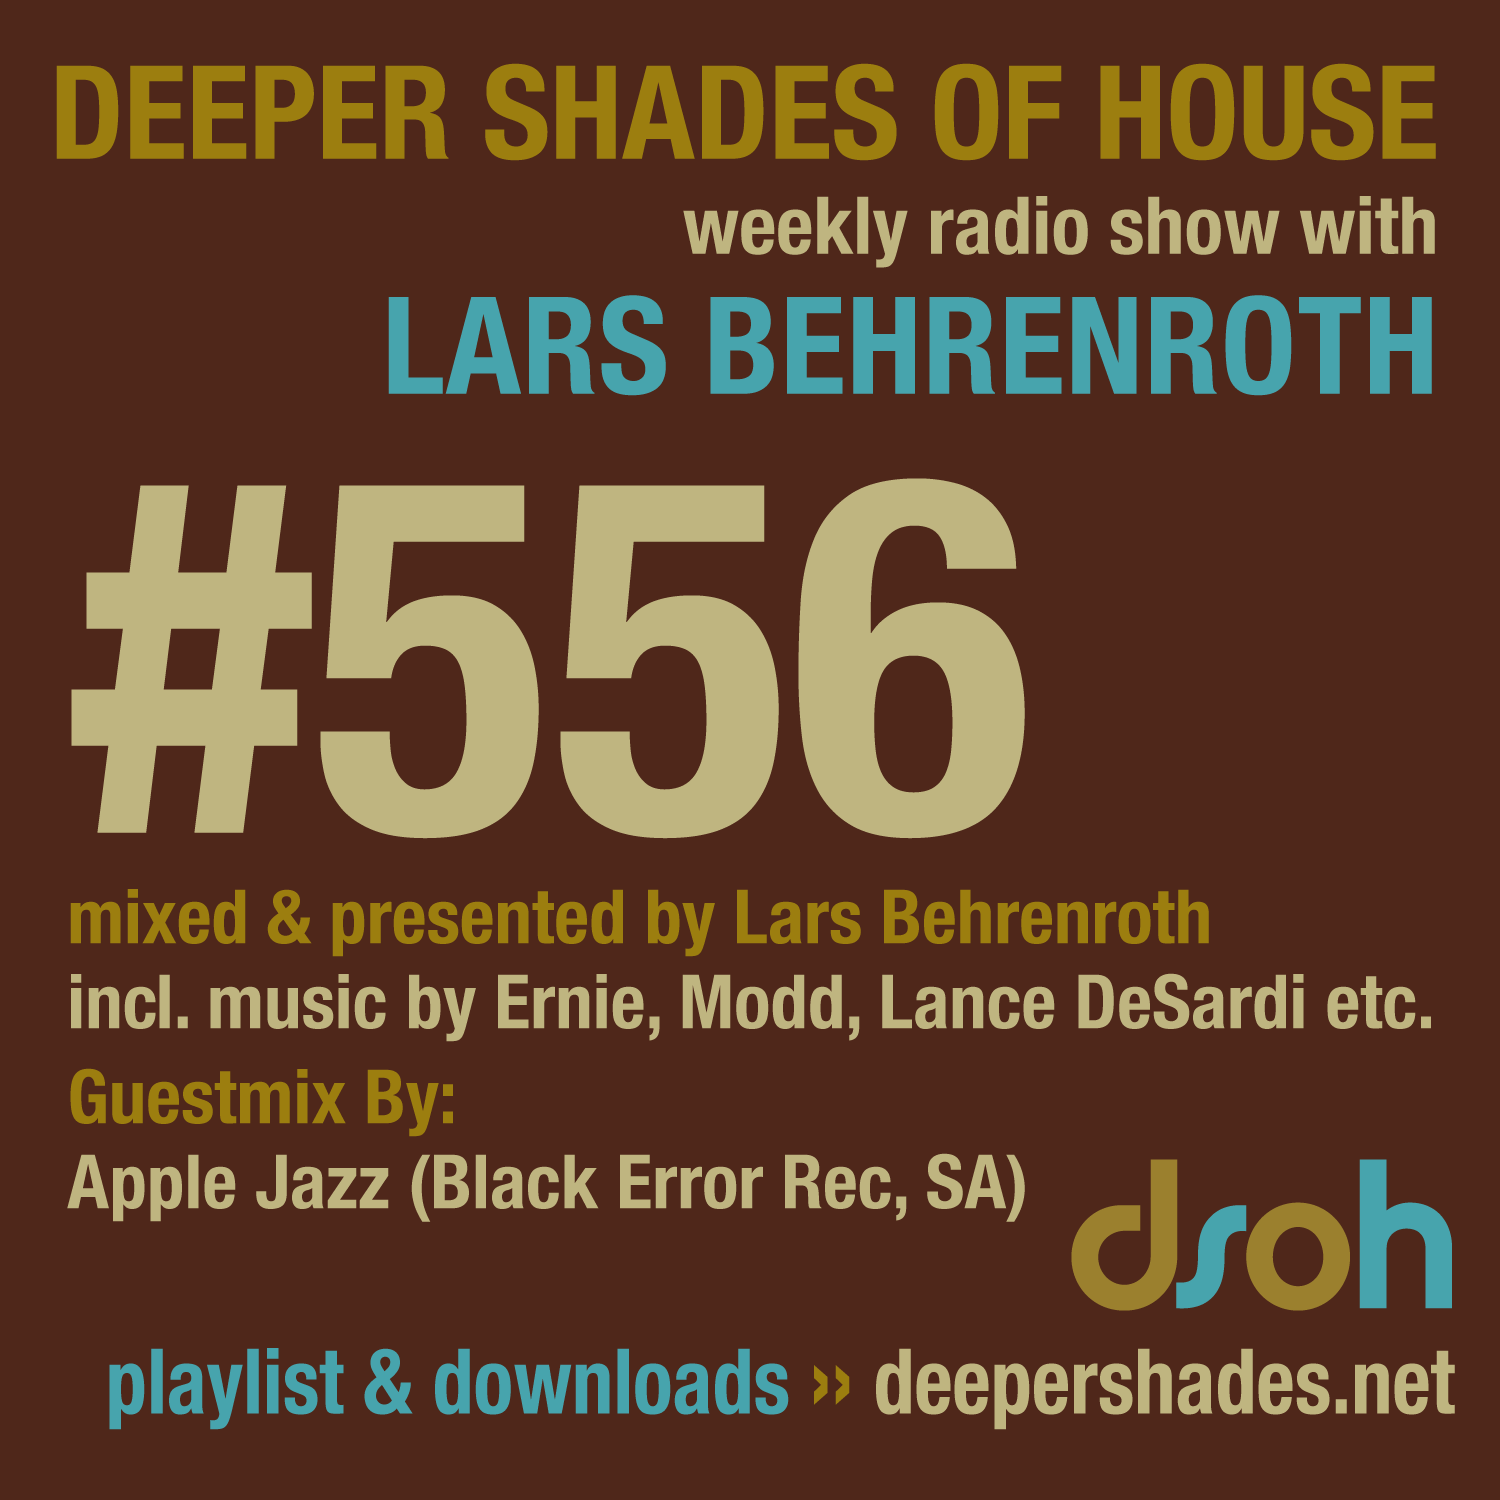 Deeper Shades Of House 556